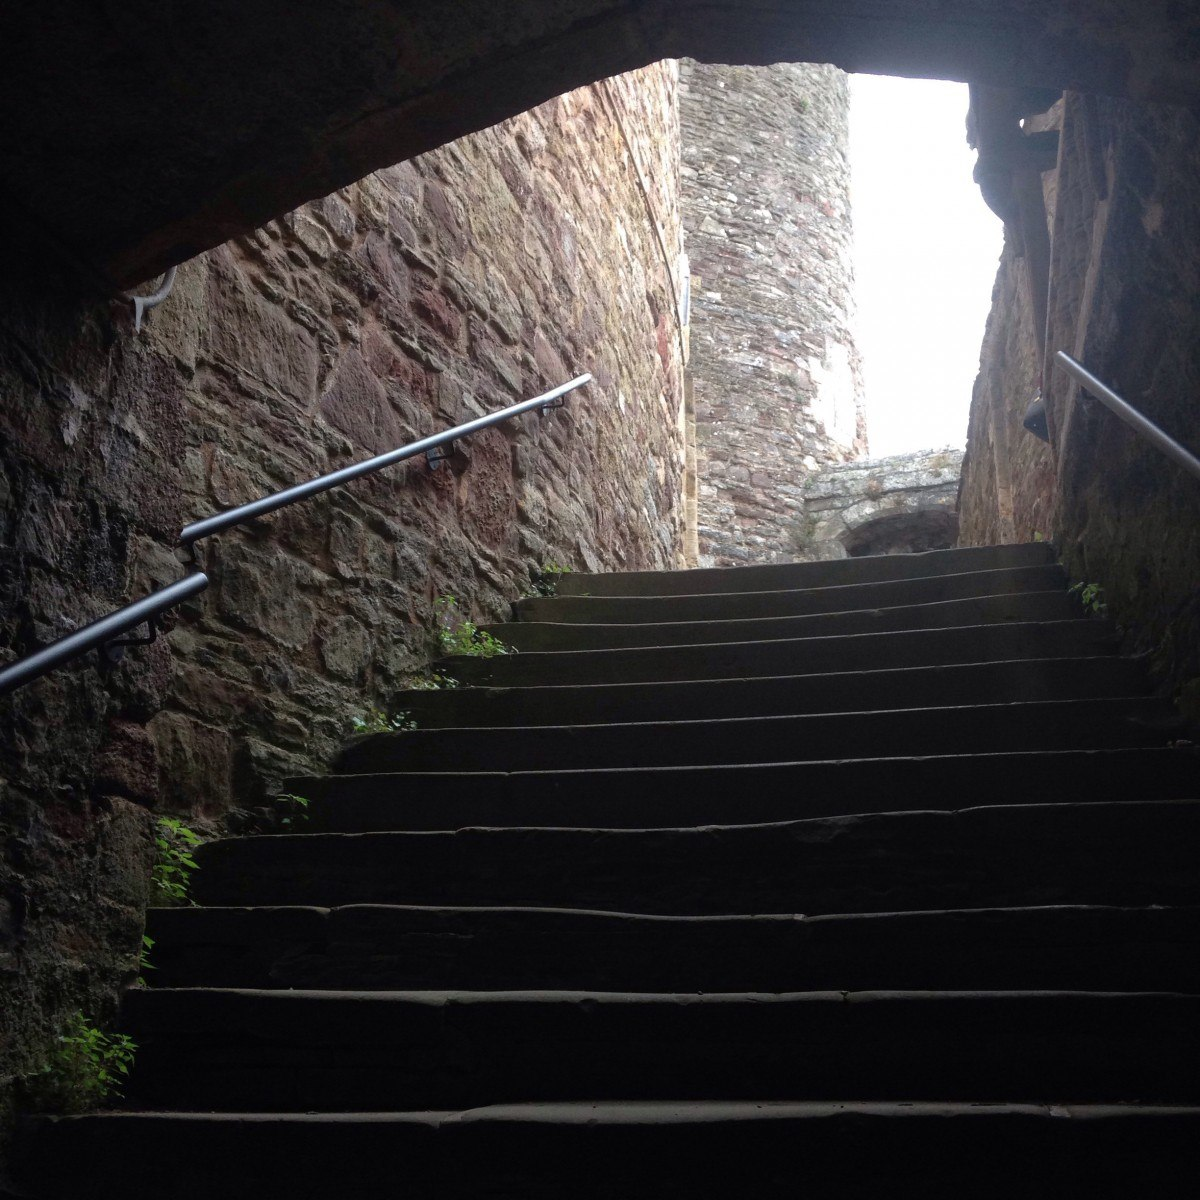 trip-steps-berkeley-castle.jpg